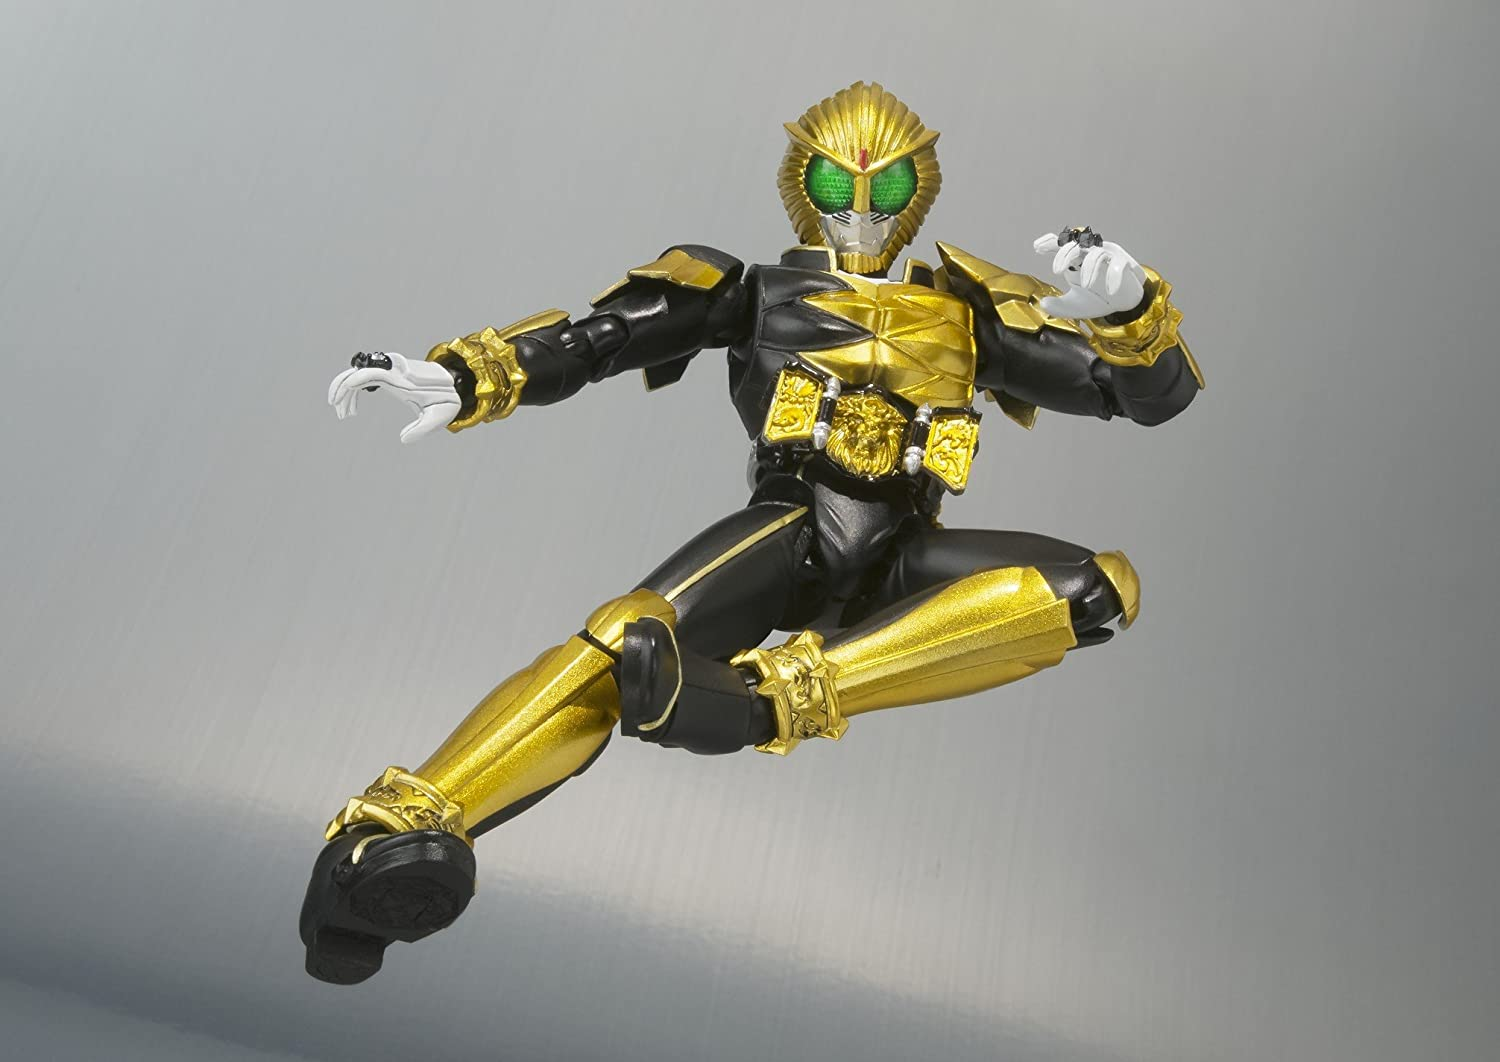 Bandai Tamashii Nations Kamen Rider Beast Wizard Action Figure by S.H.Figuarts Bluefin Distribution Toys 80575